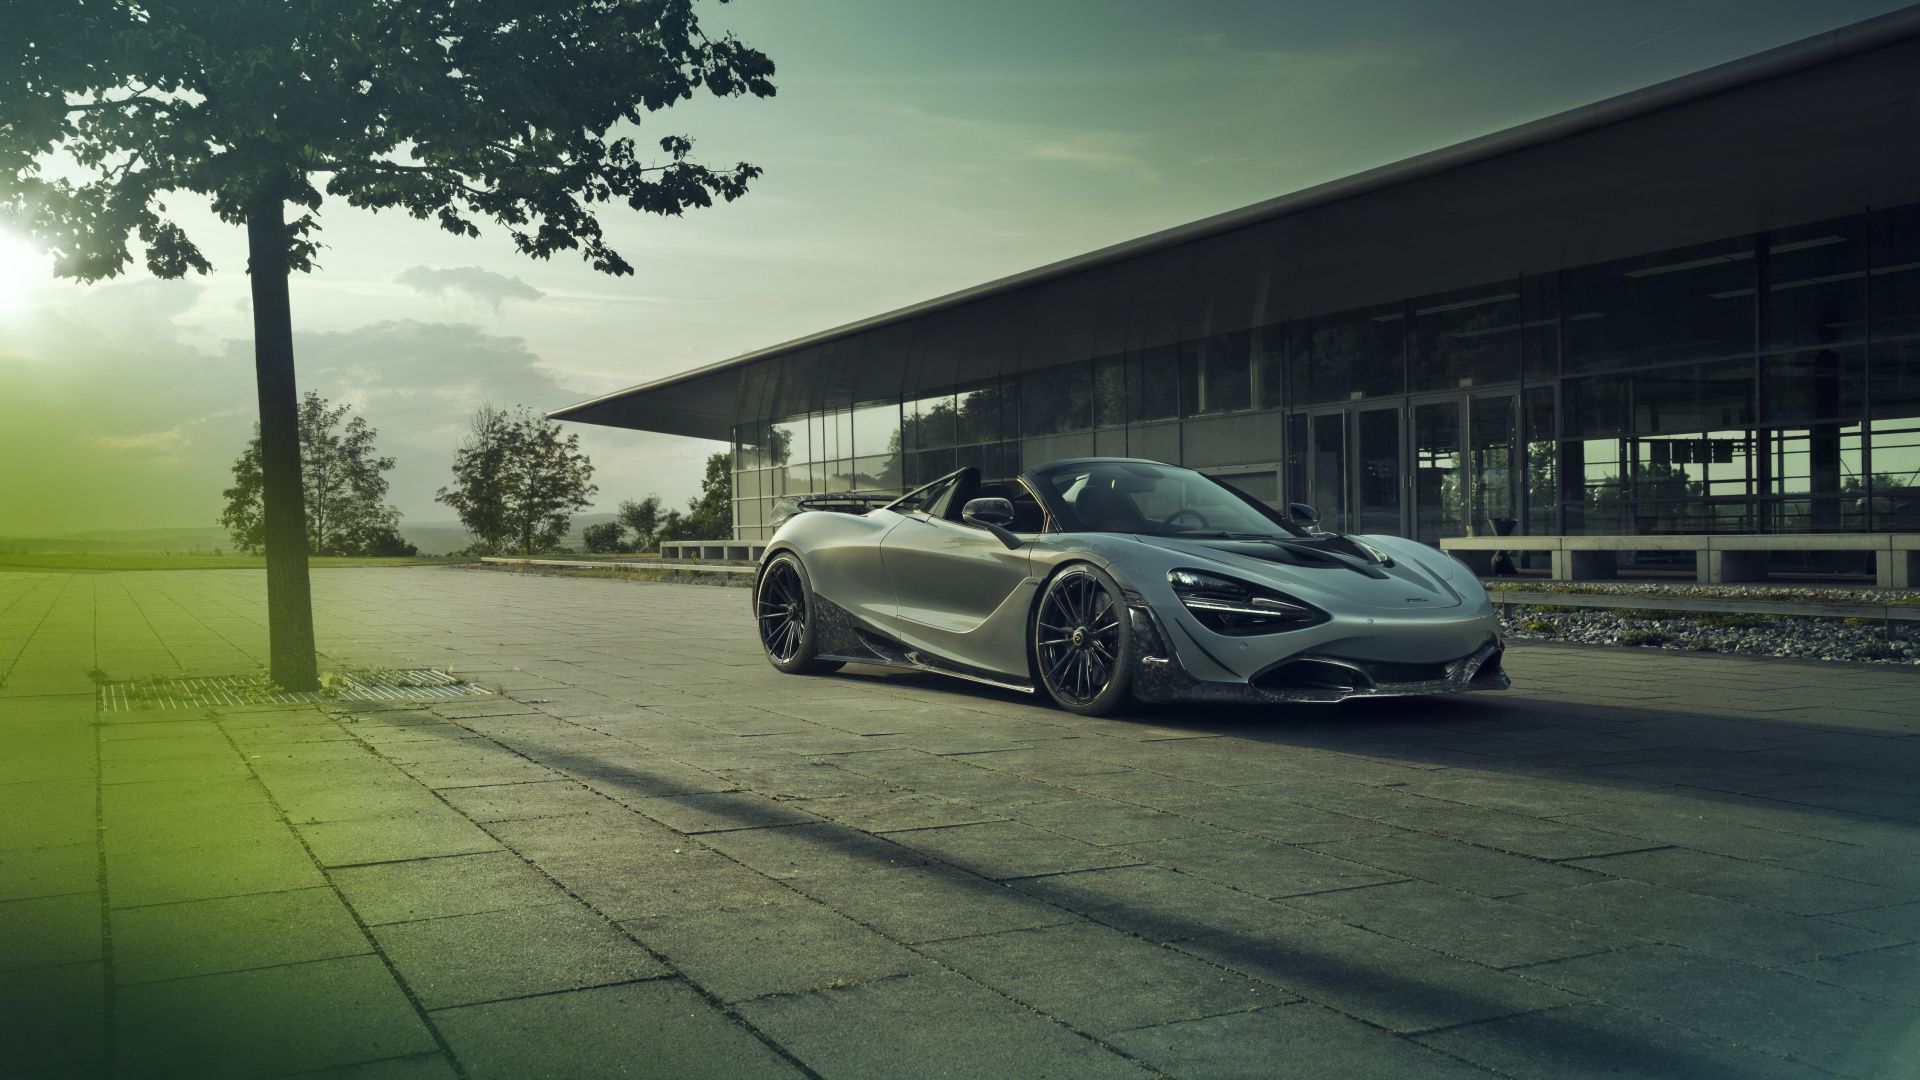 1920x1080 Supercar Mclaren 720s Grey Wallpaper Car Wallpapers